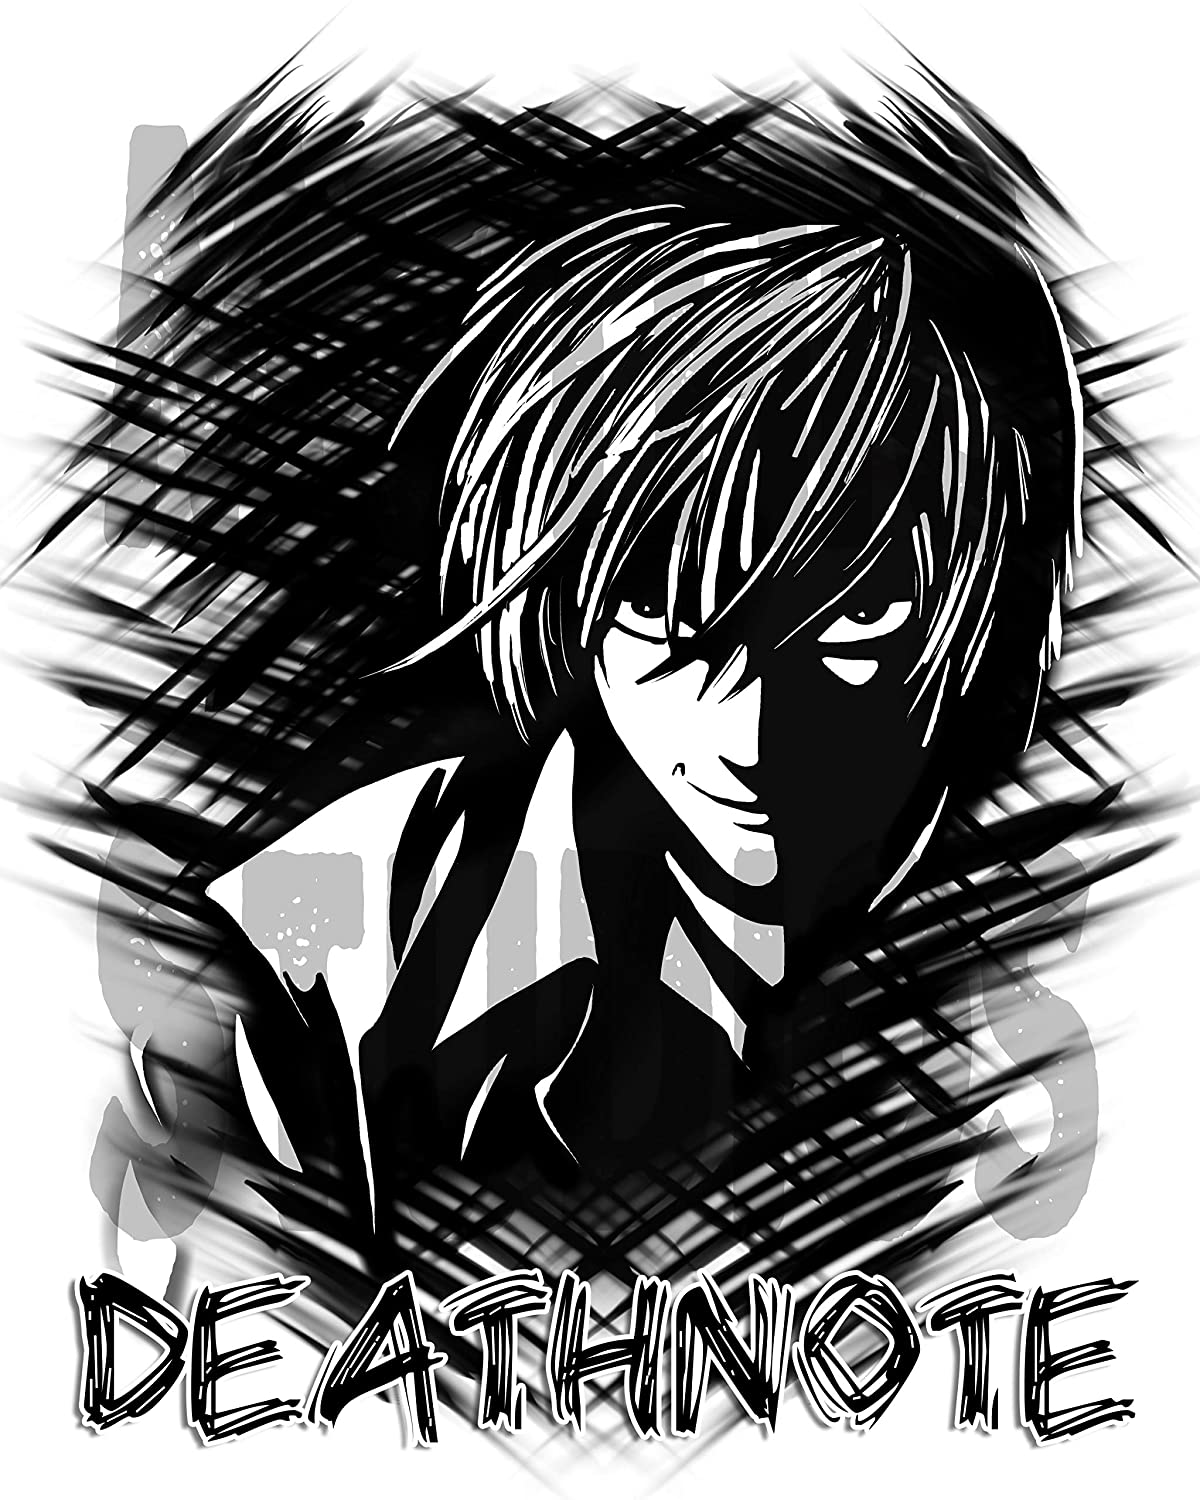 Personalized Airbrush Deathnote License Plate Tag